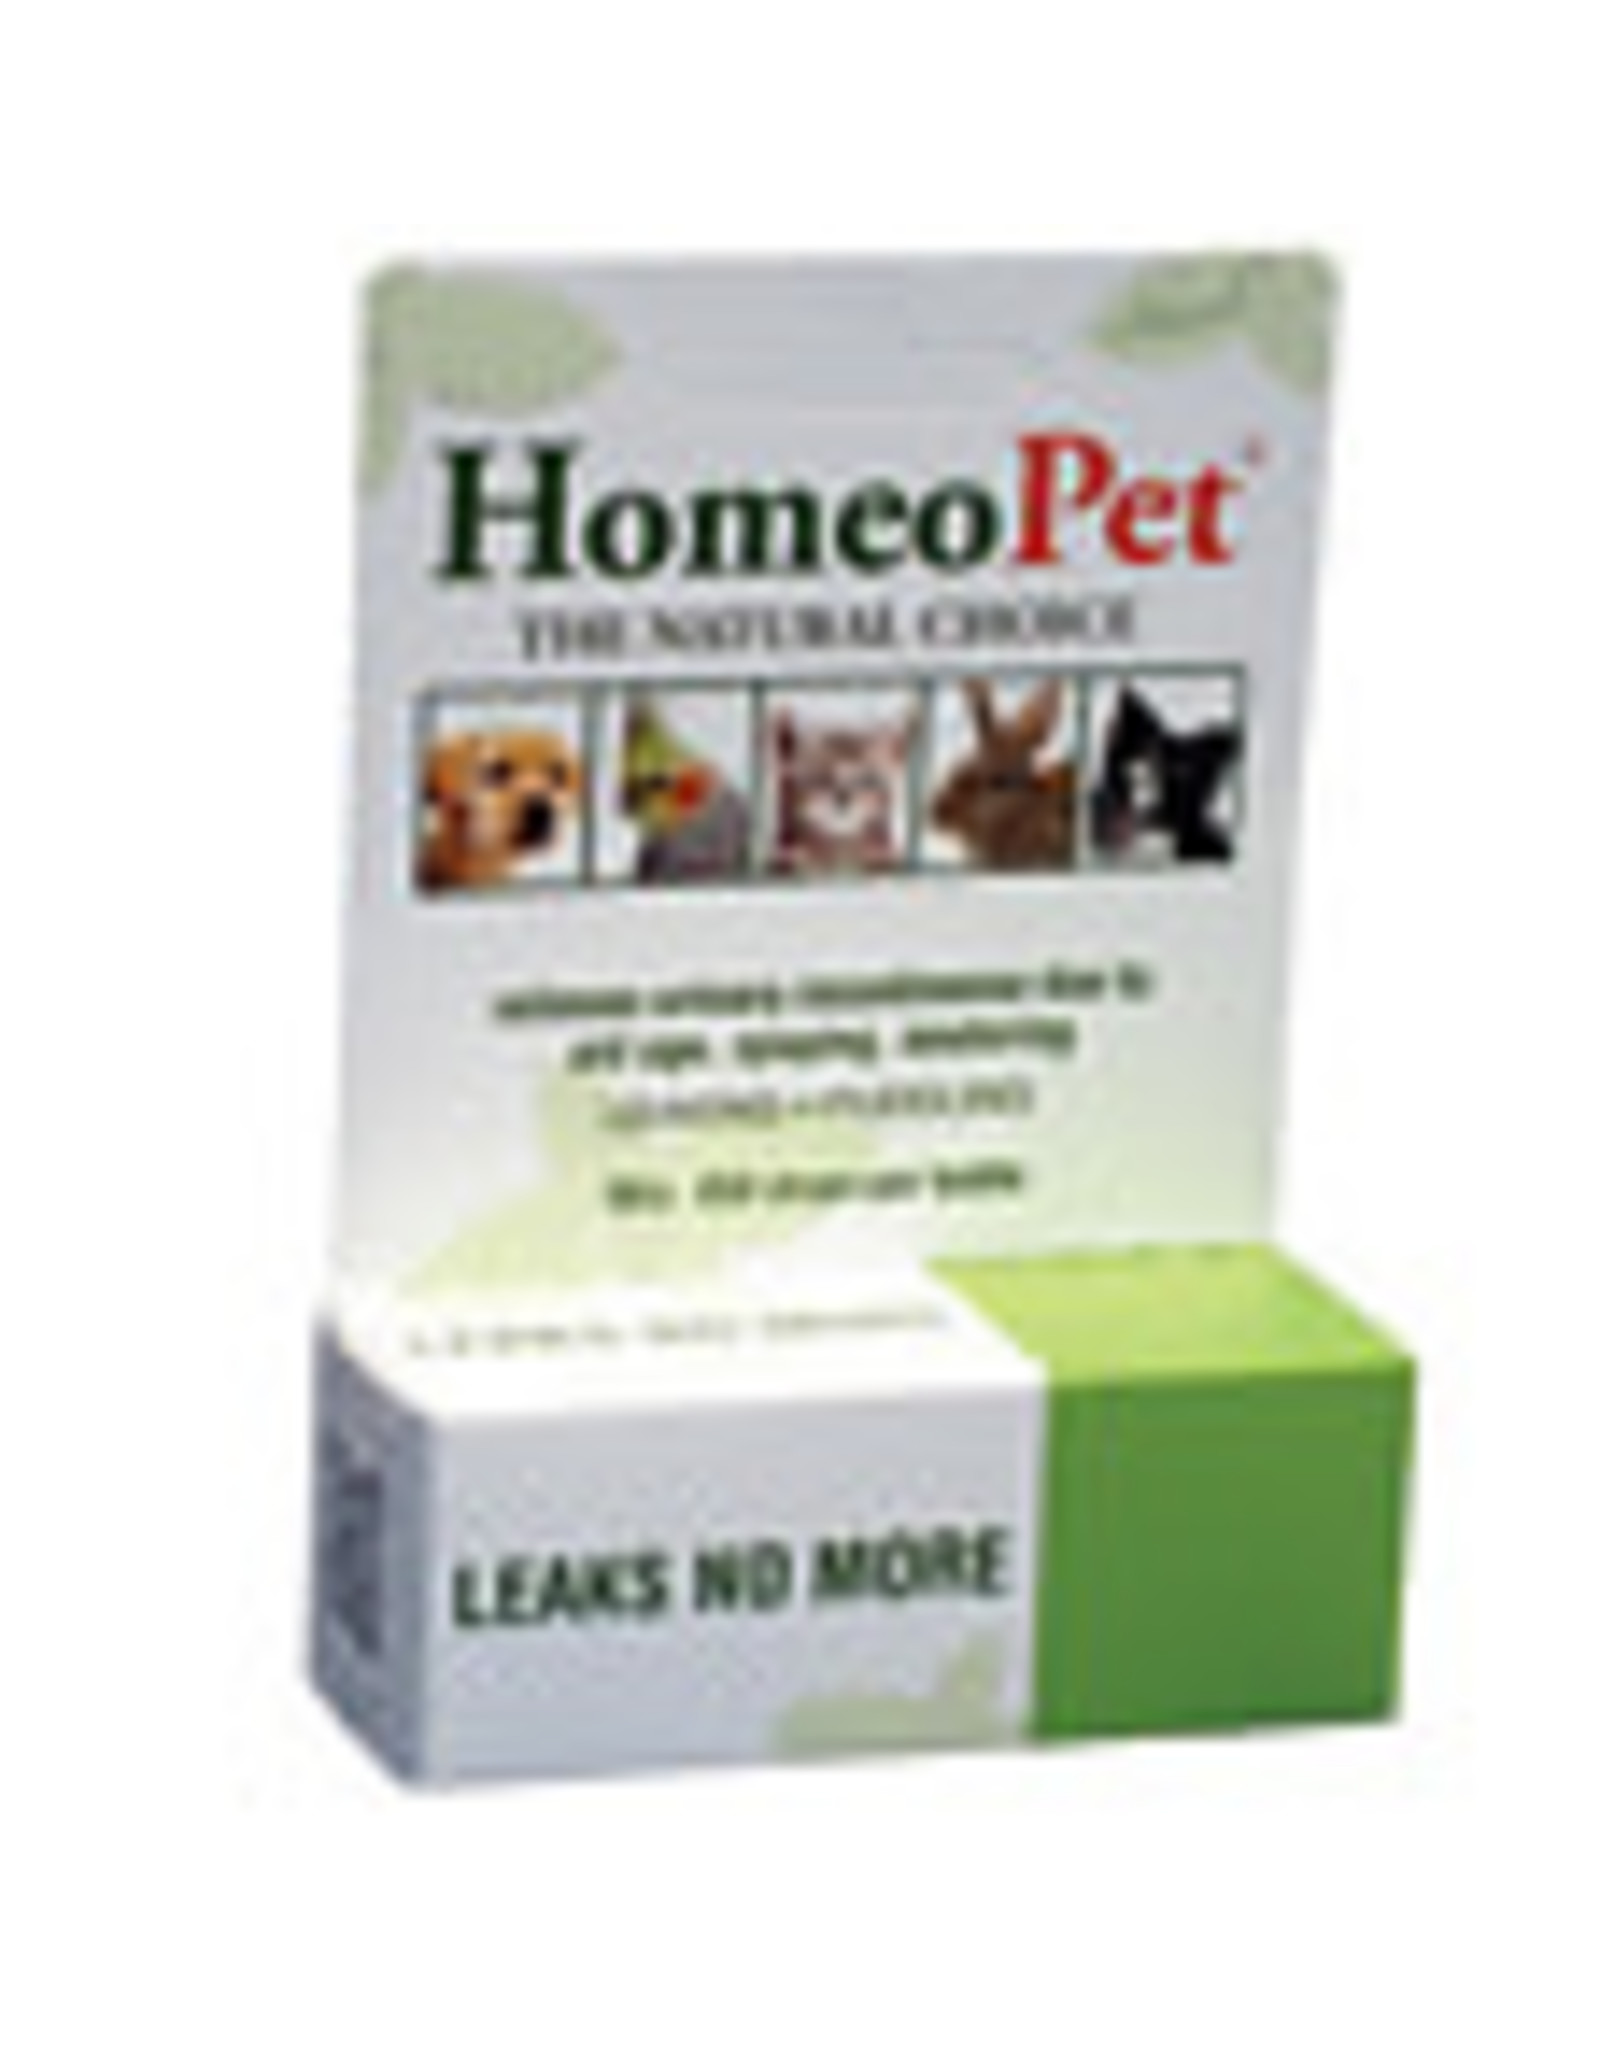 Homeopet HOMEOPET Leaks No More